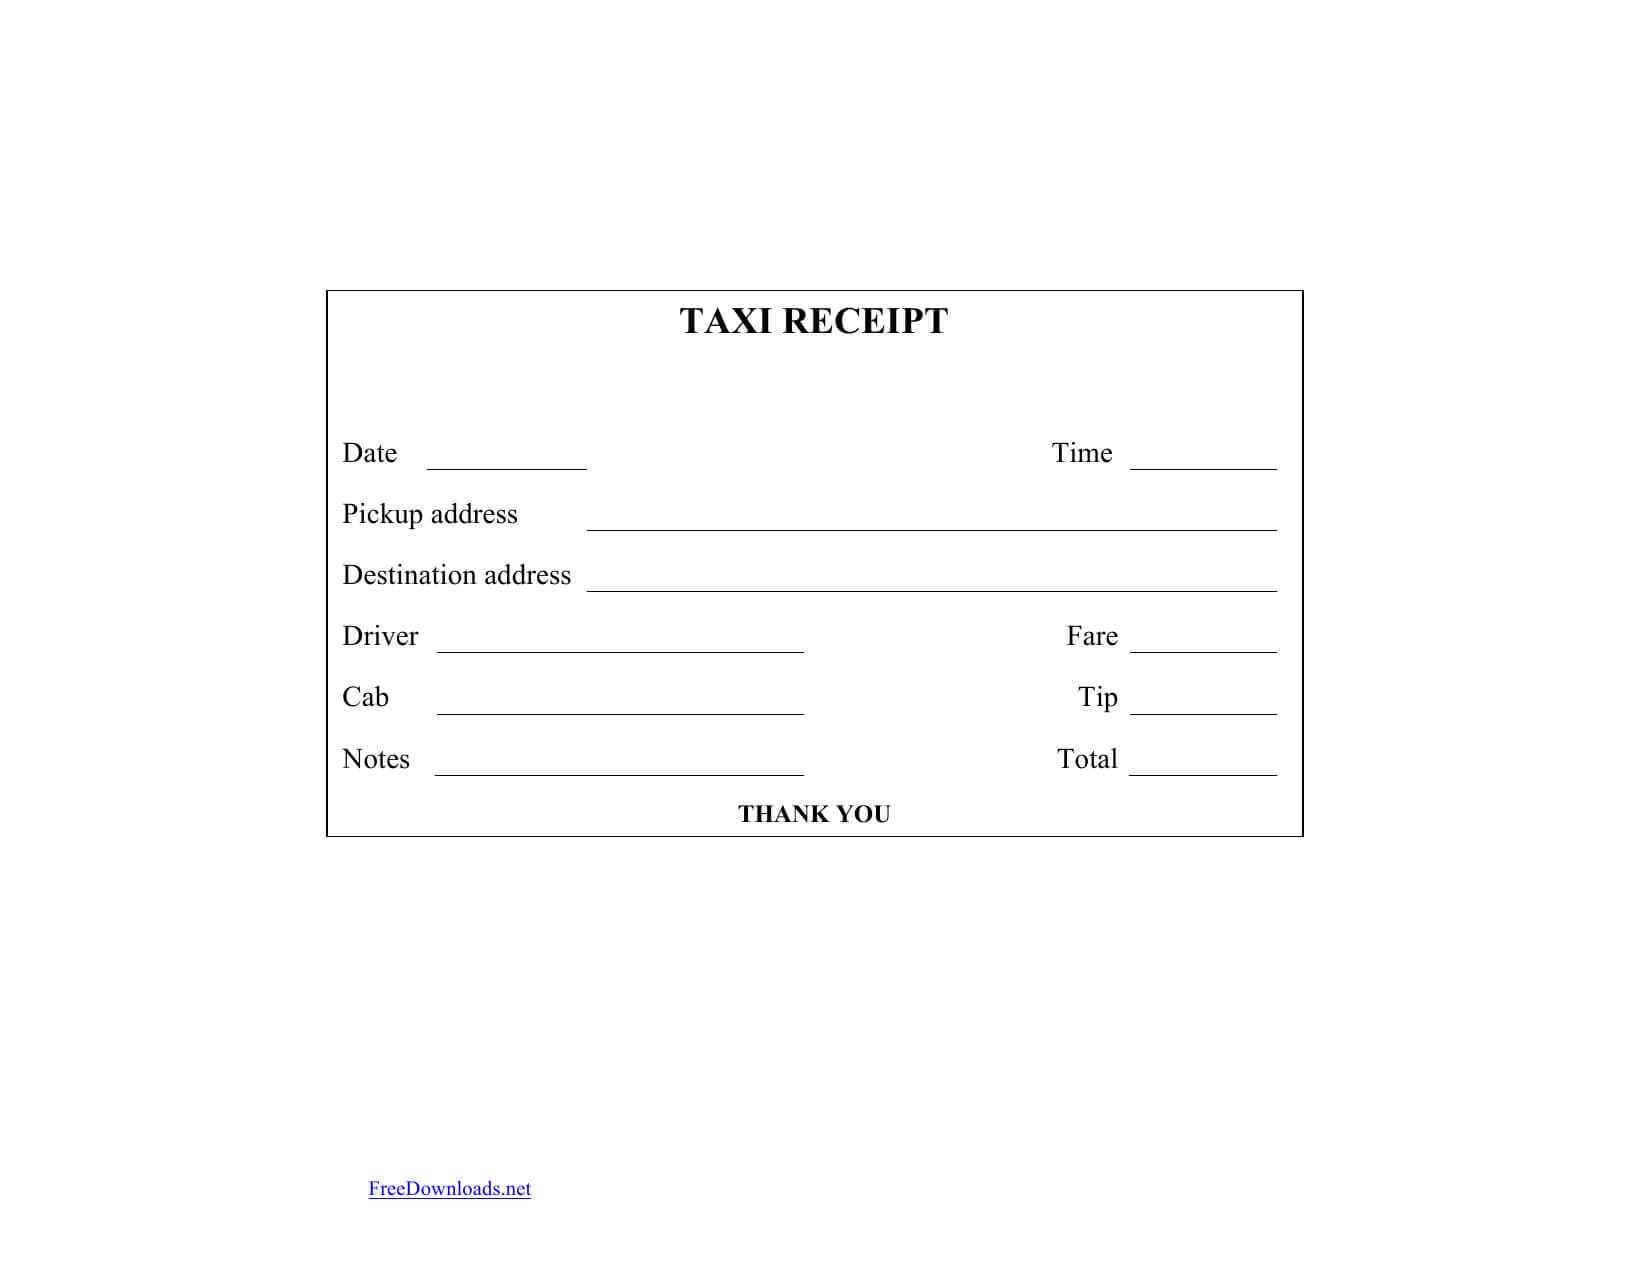 Download Blank Printable Taxi/cab Receipt Template | Excel With Regard To Blank Taxi Receipt Template